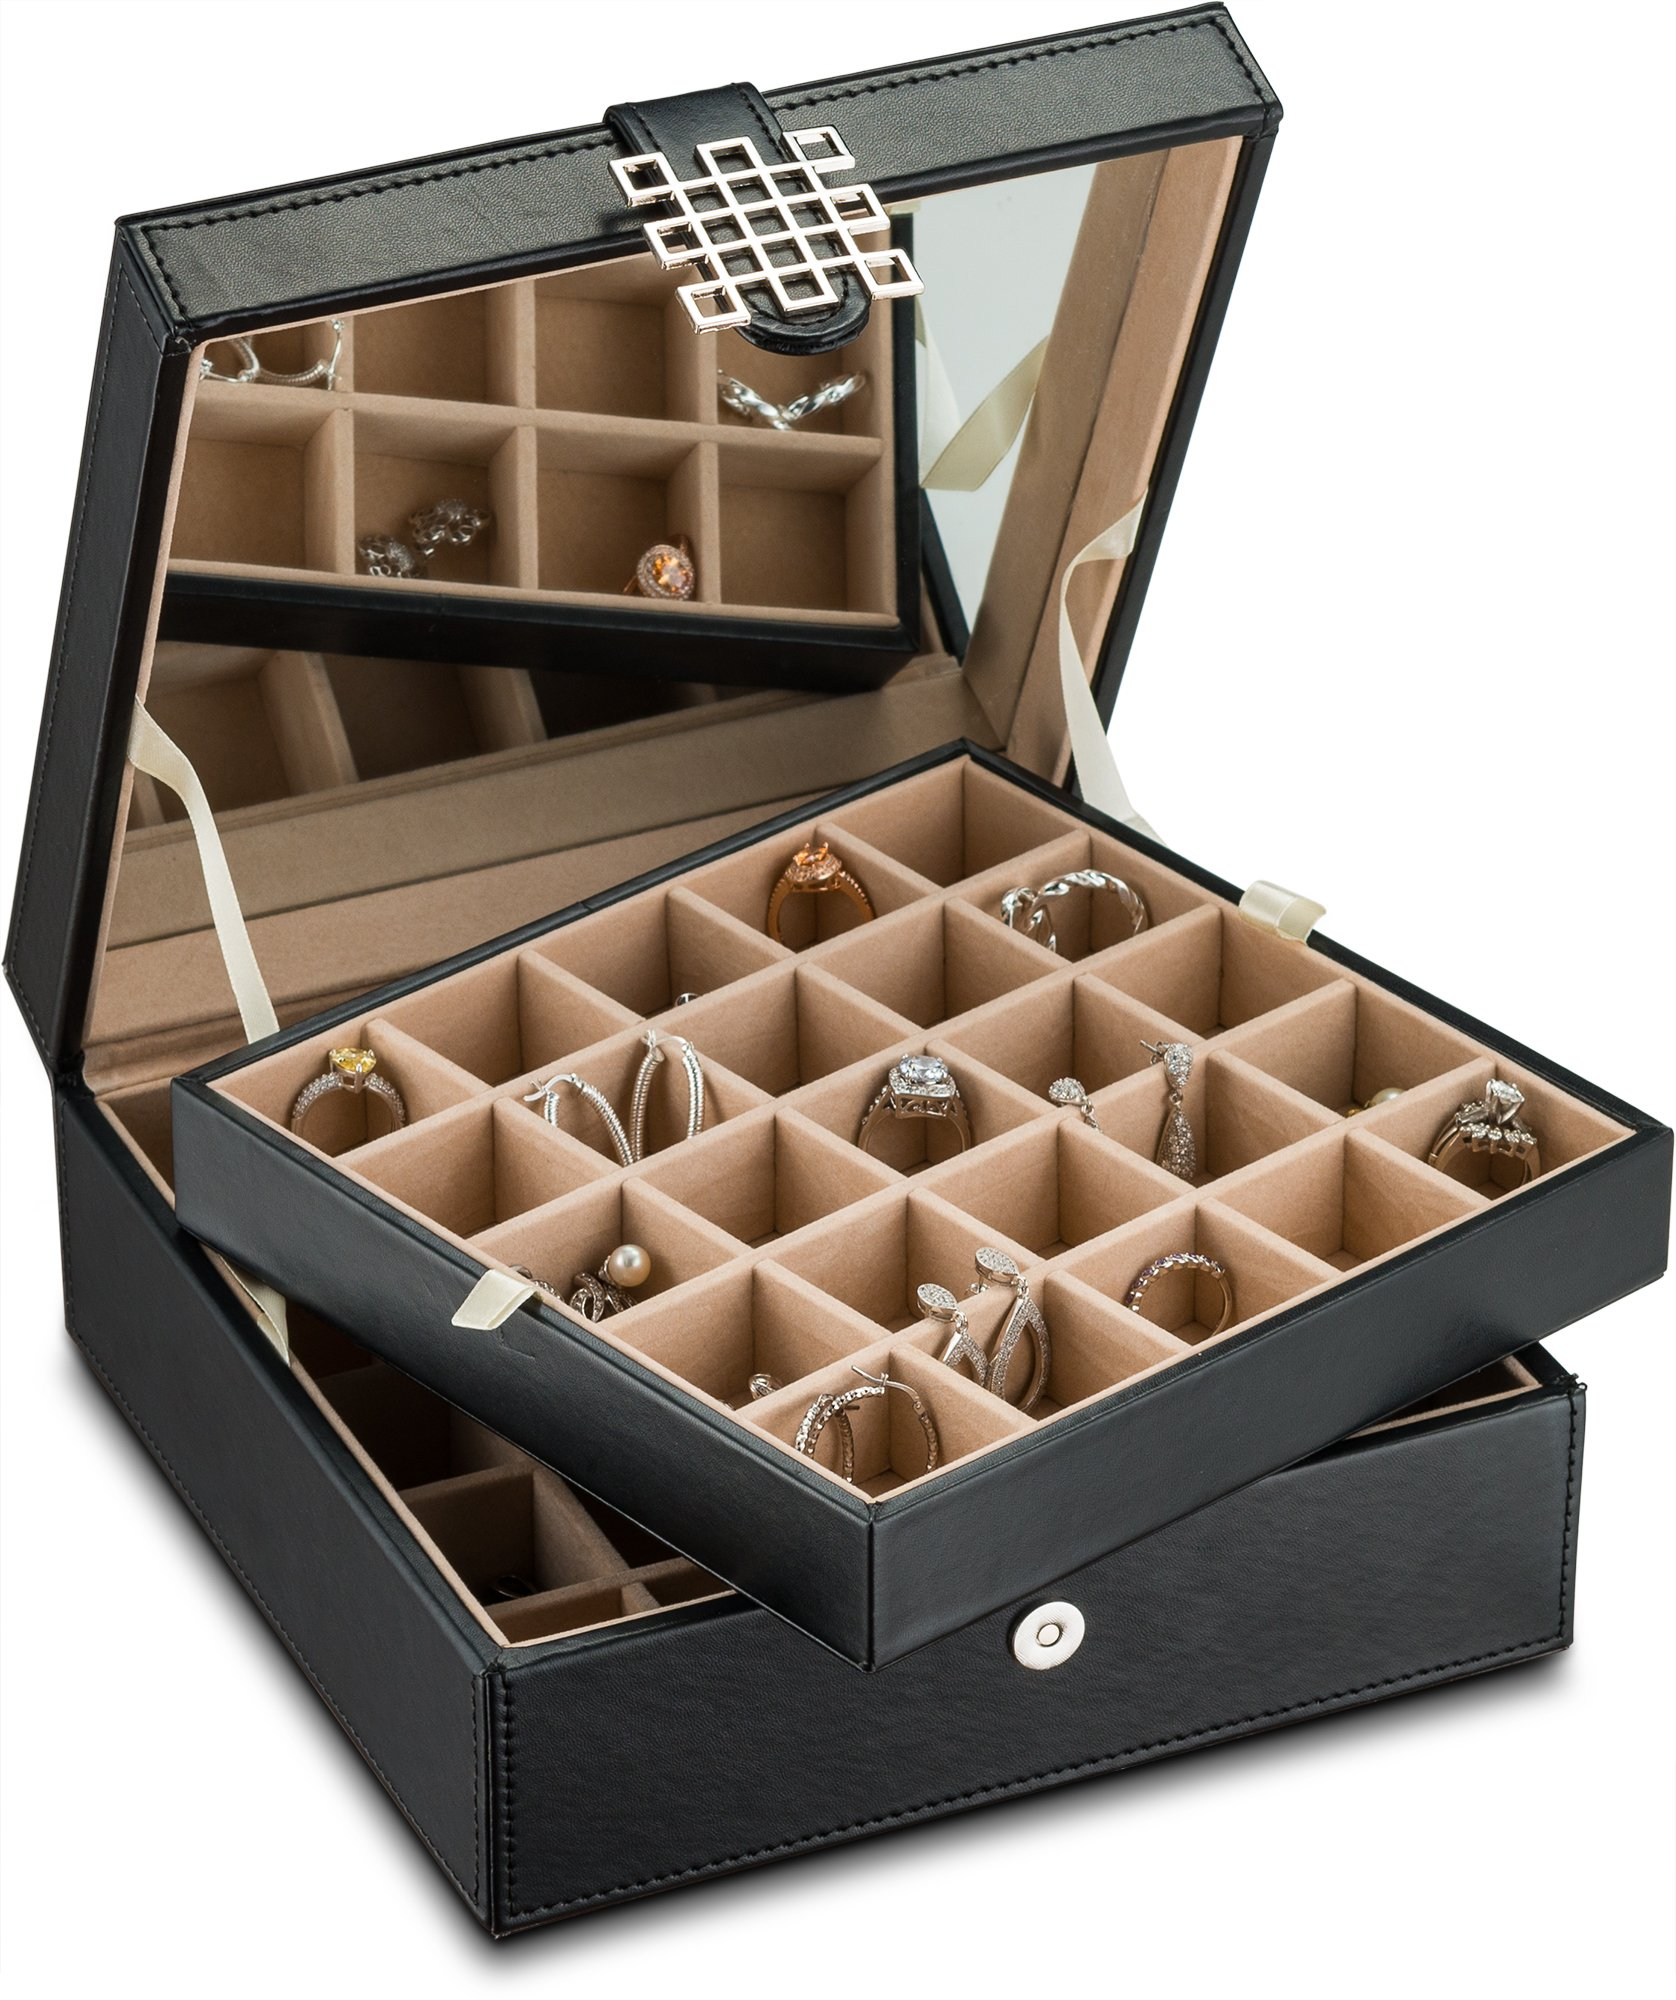 Glenor Co Classic 50 Slot Jewelry Box Earrings Organizer with Large Mirror, Black by Glenor Co